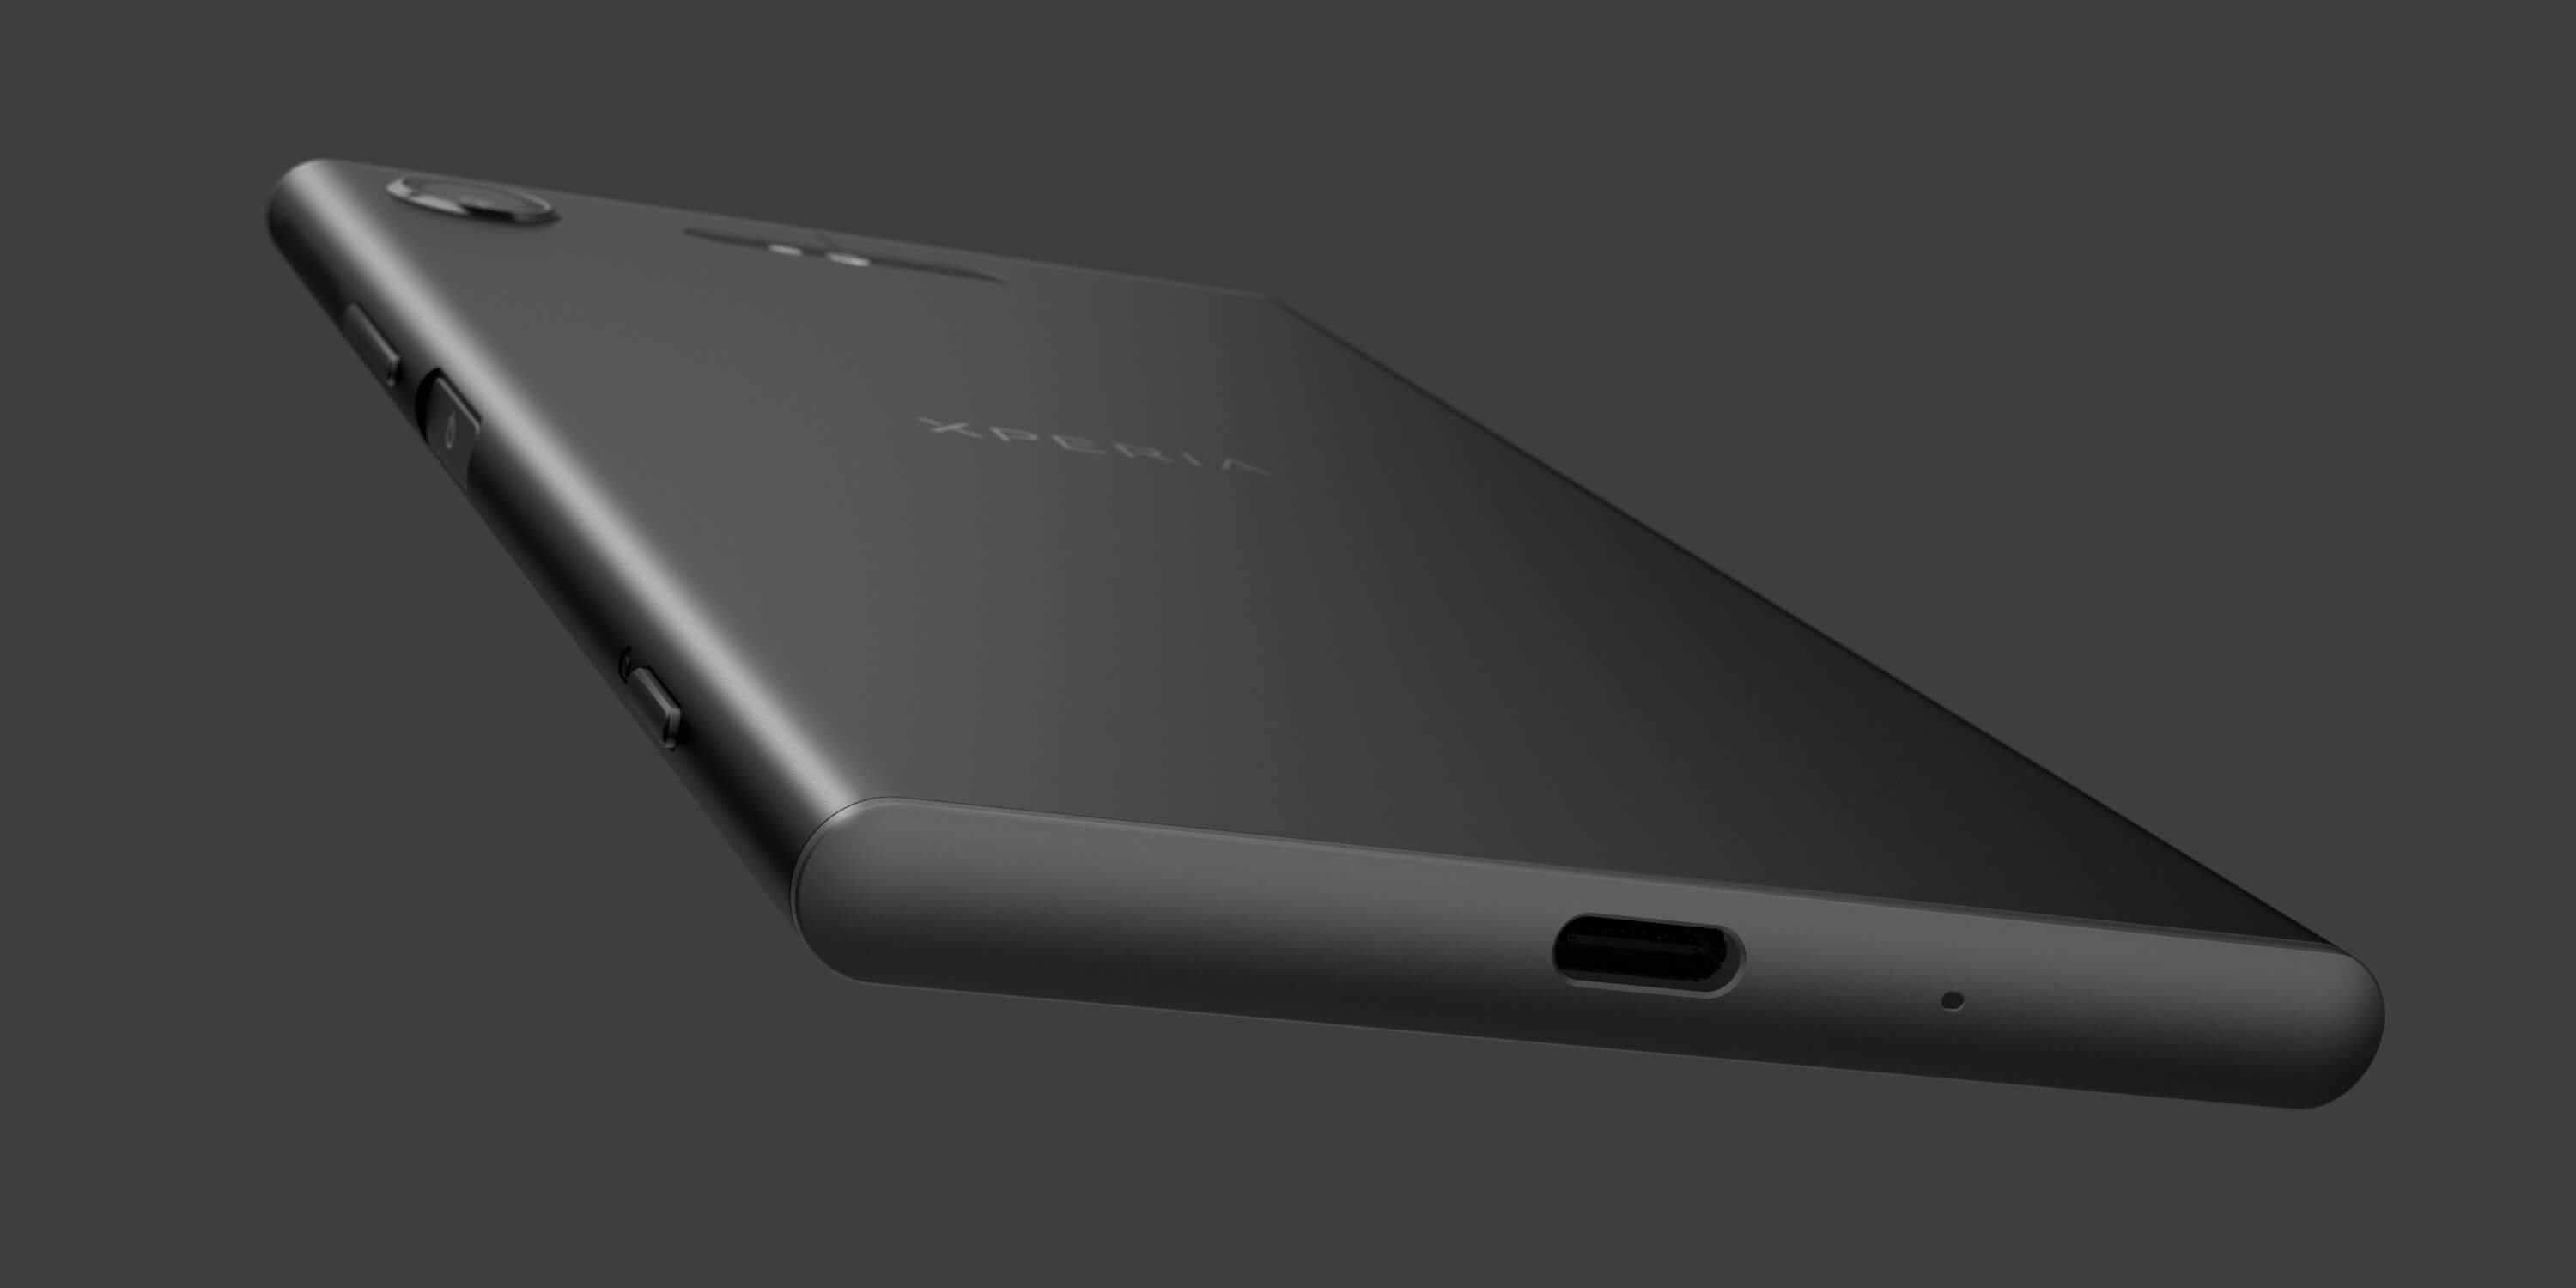 IFA 2017: Sony Xperia XZ1 und XZ1 Compact mit 3D Scan-Funktion 6